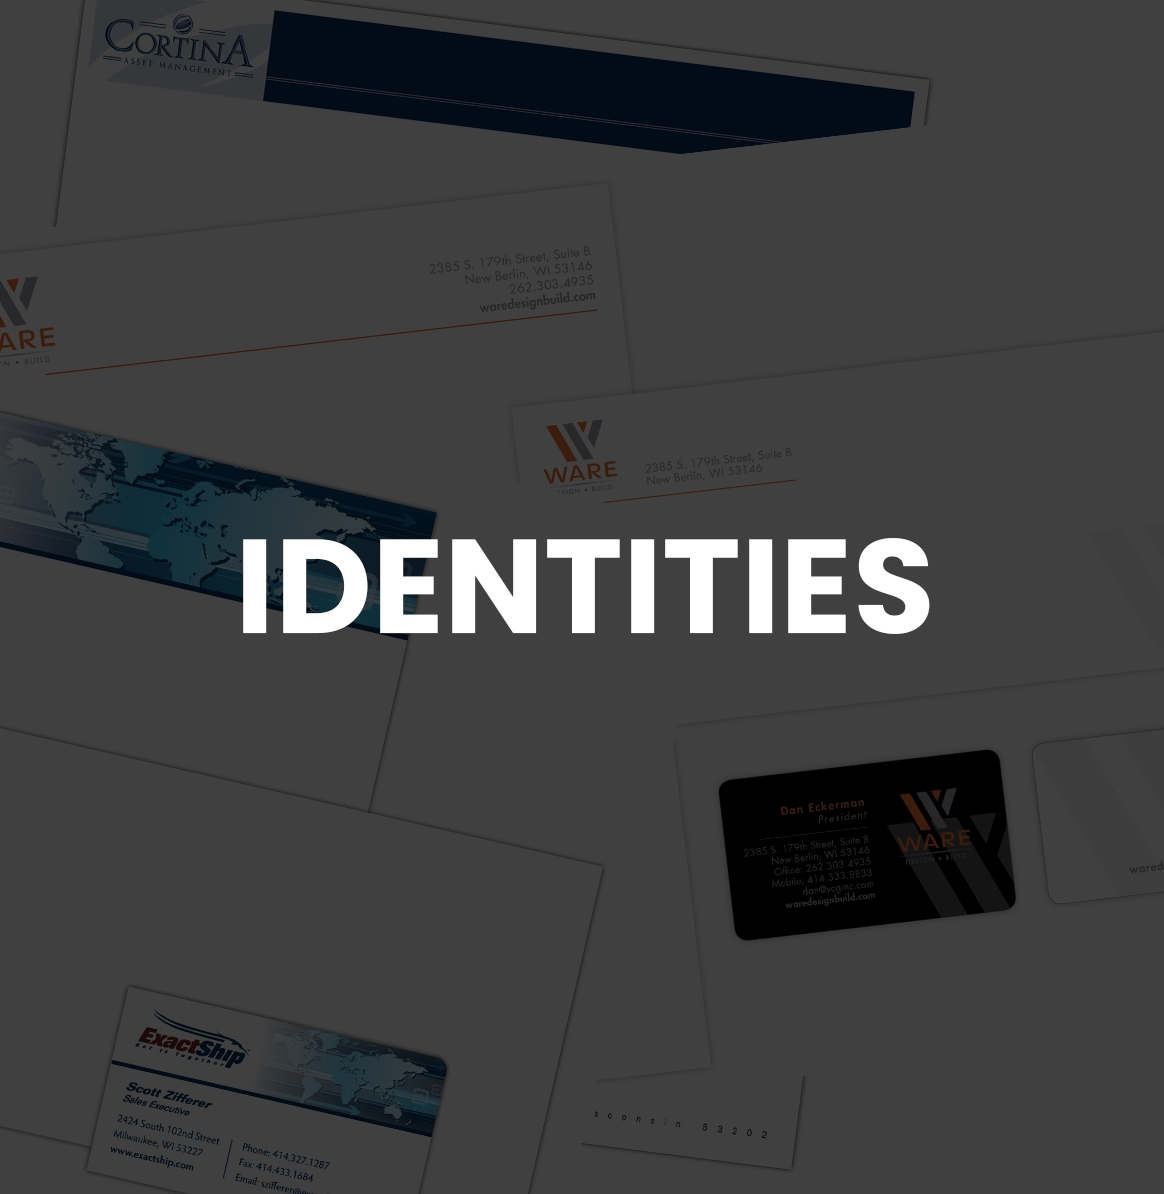 CategoryMasters_IDENTITIES